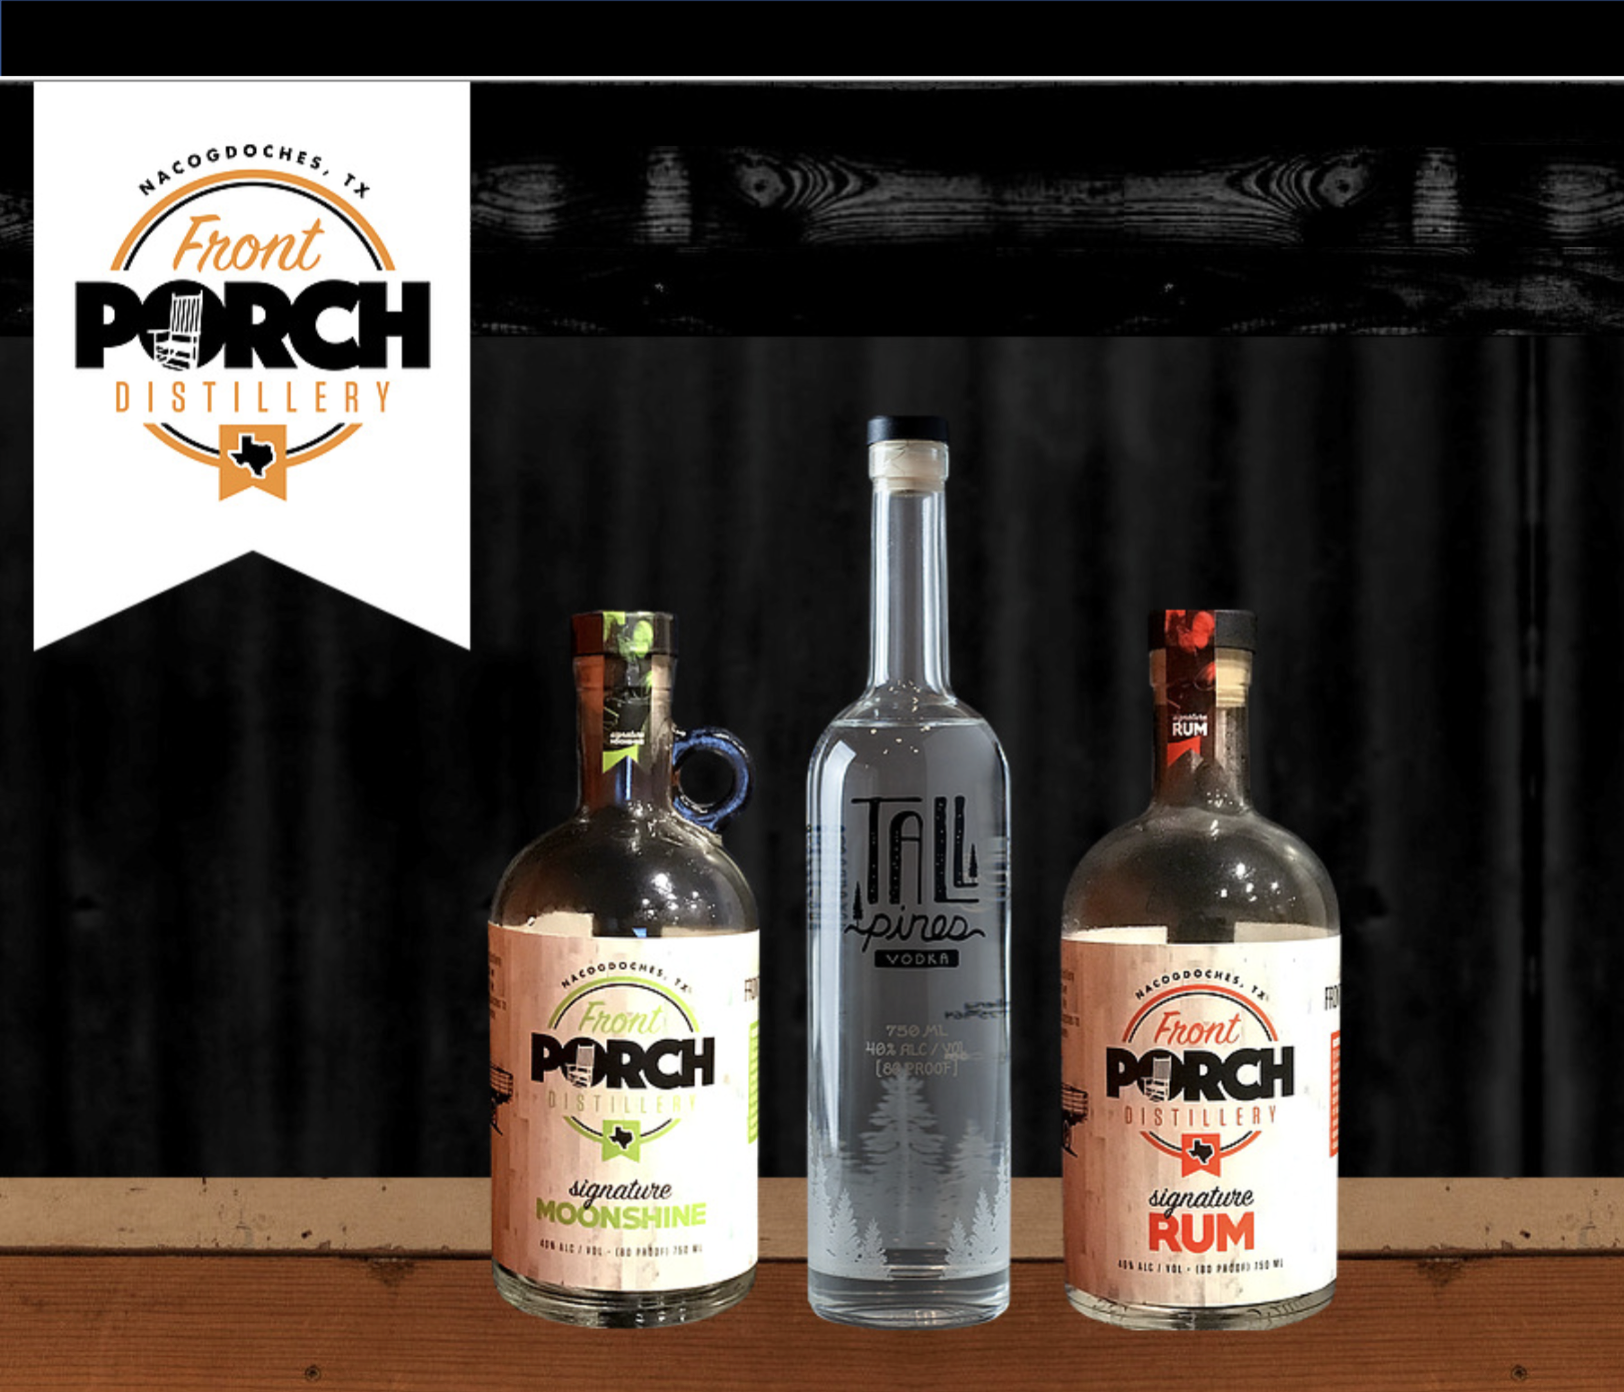 Sam Shupak to endorse Texas based Front Porch Distillery